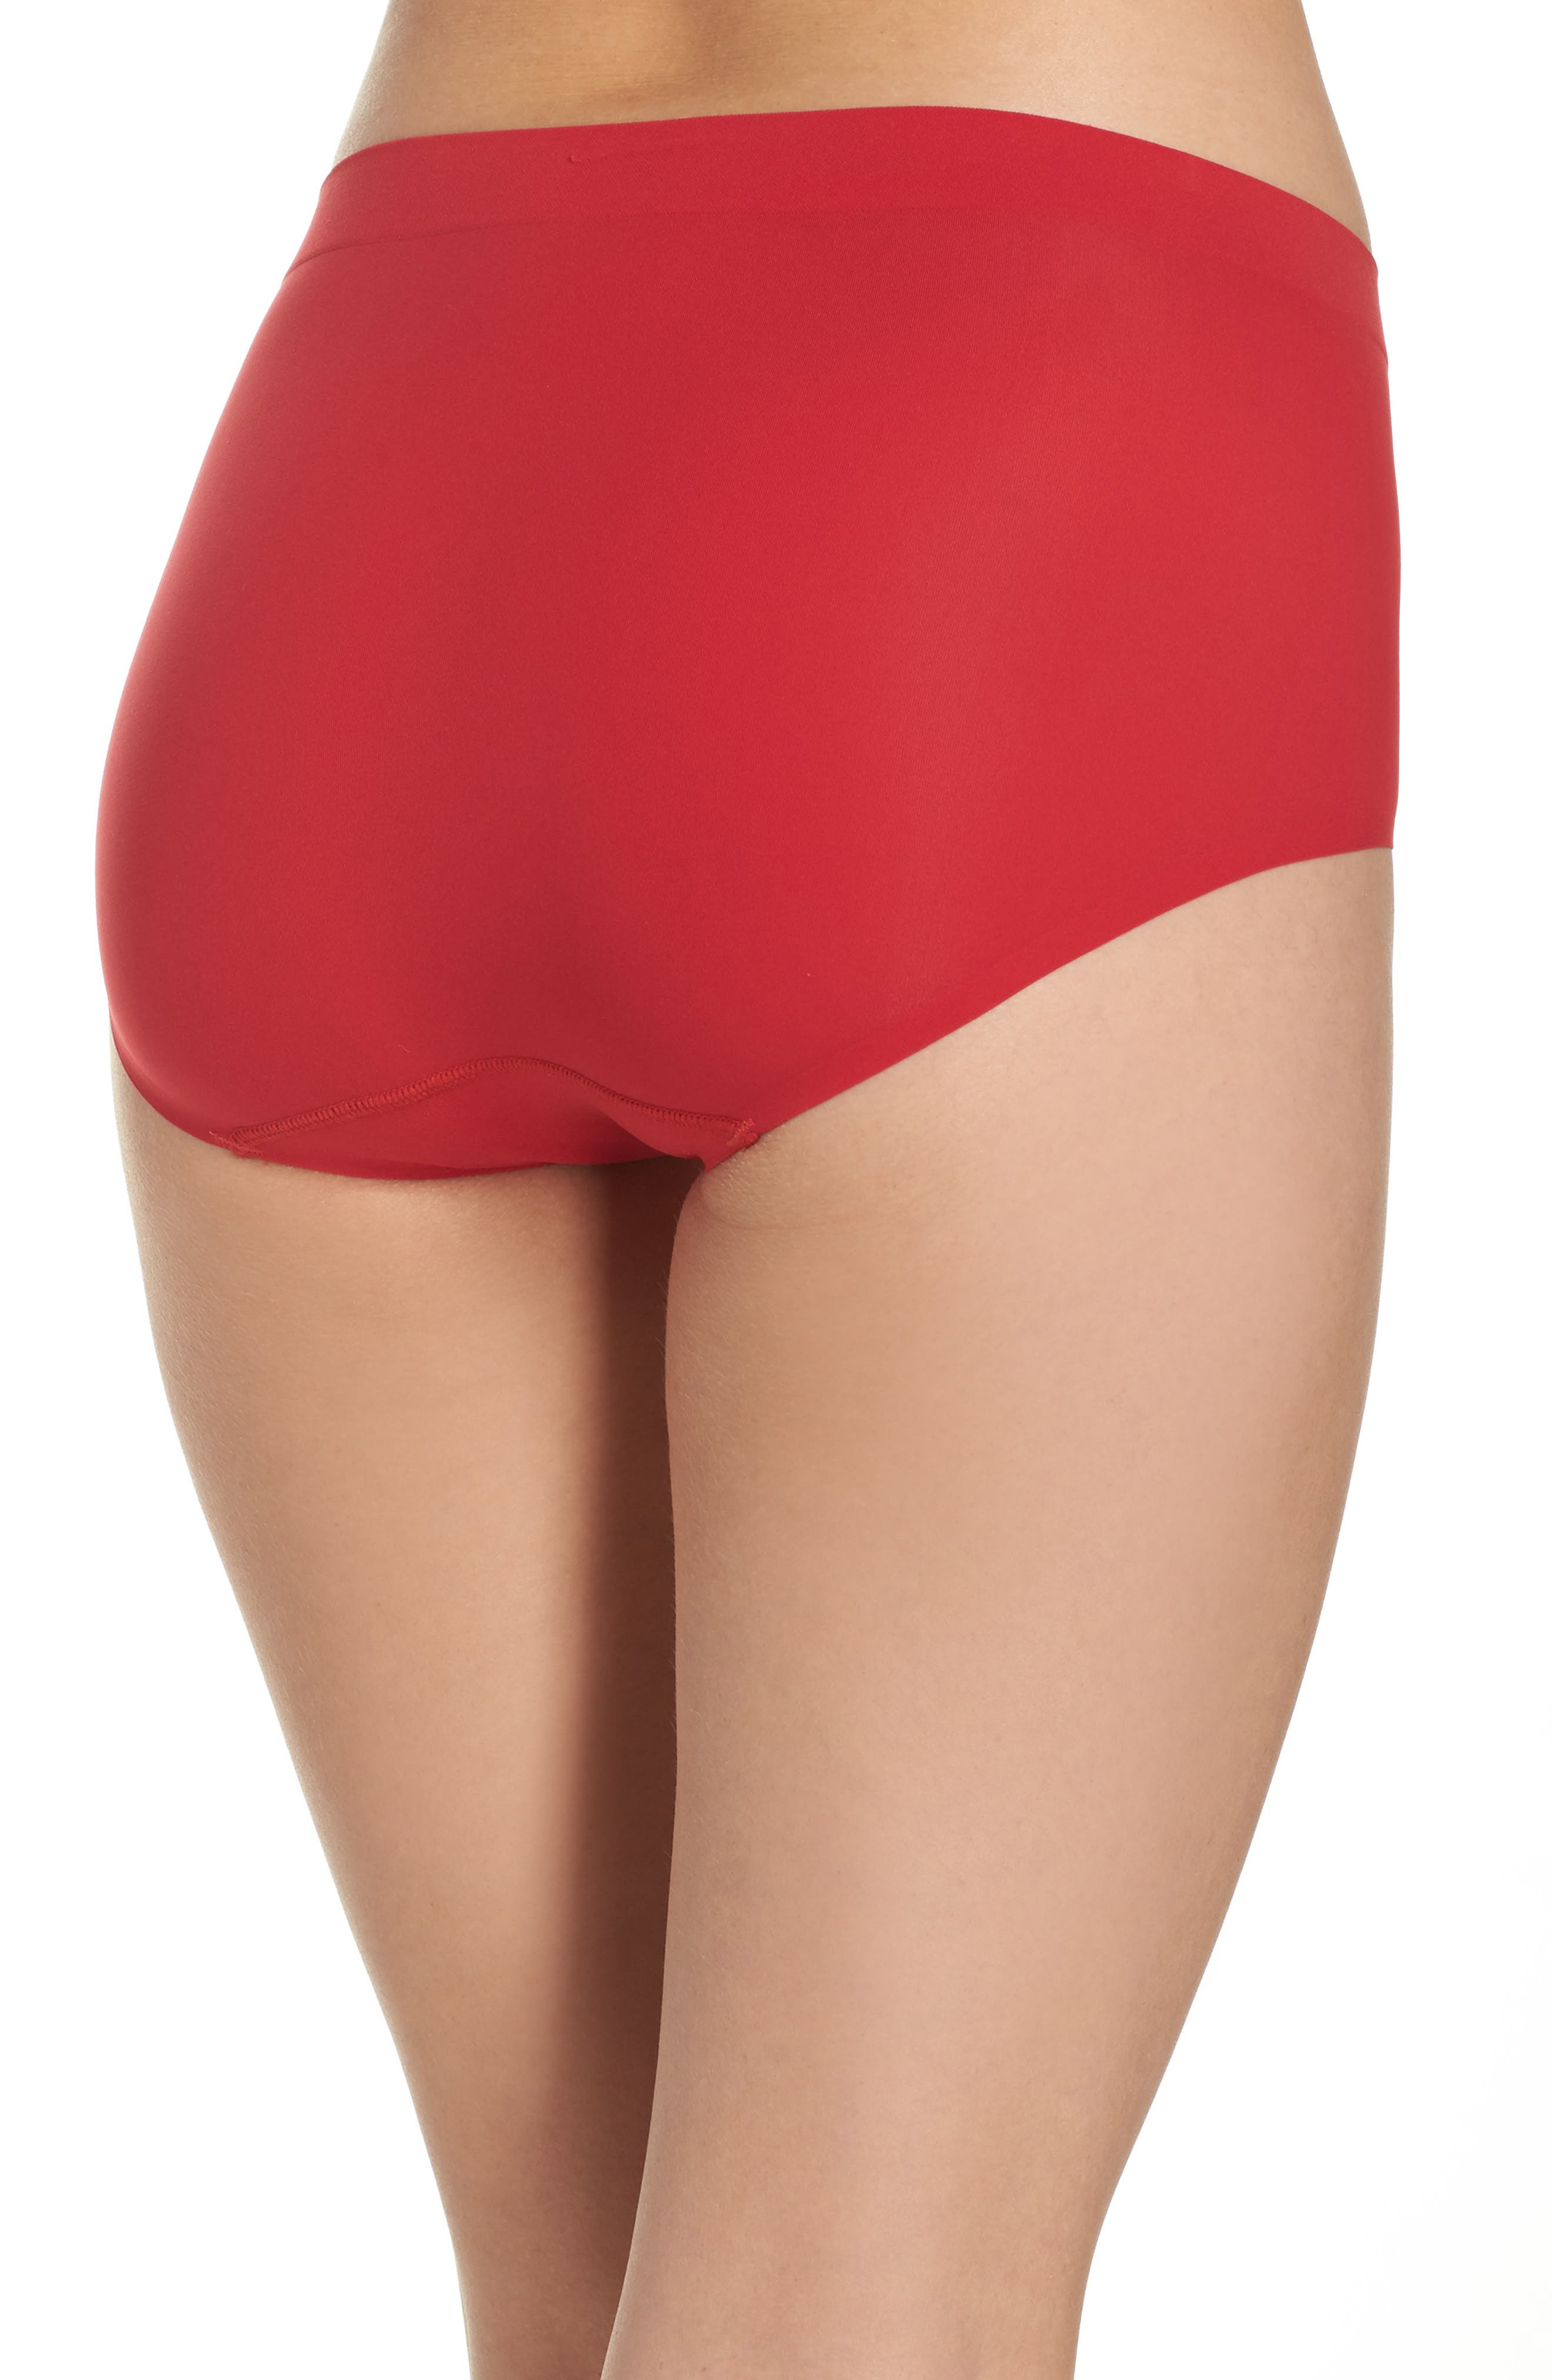 'Skinsense' Seamless Briefs,                             Alternate thumbnail 2, color,                             Tango Red